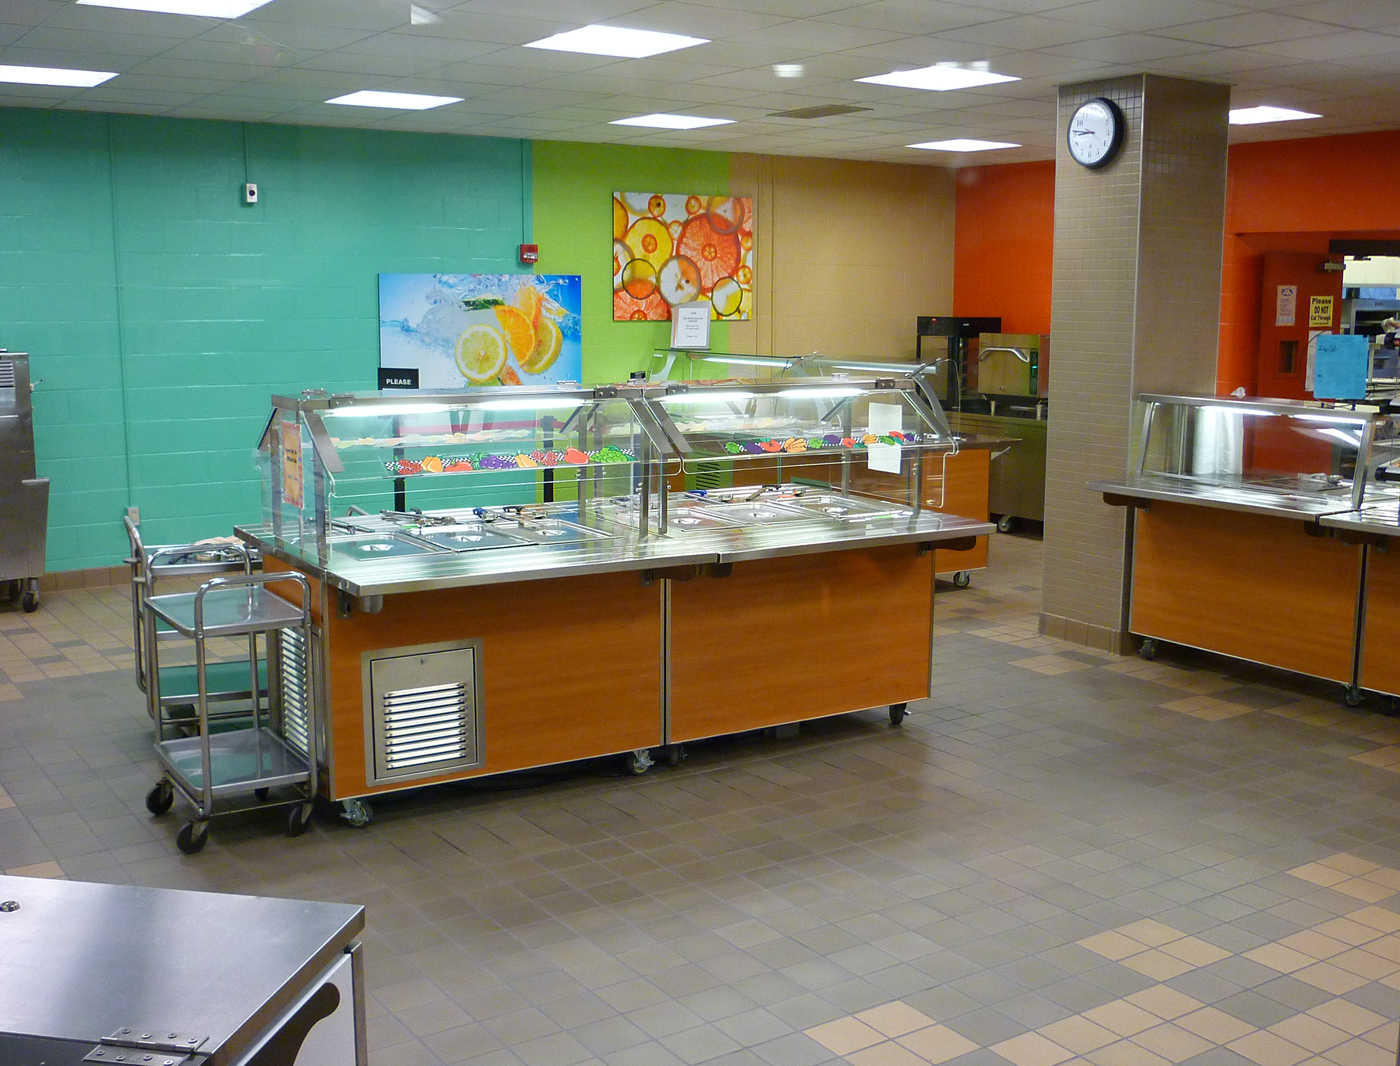 Turpin High School Cincinnati - Graybach Commercial Renovation 2